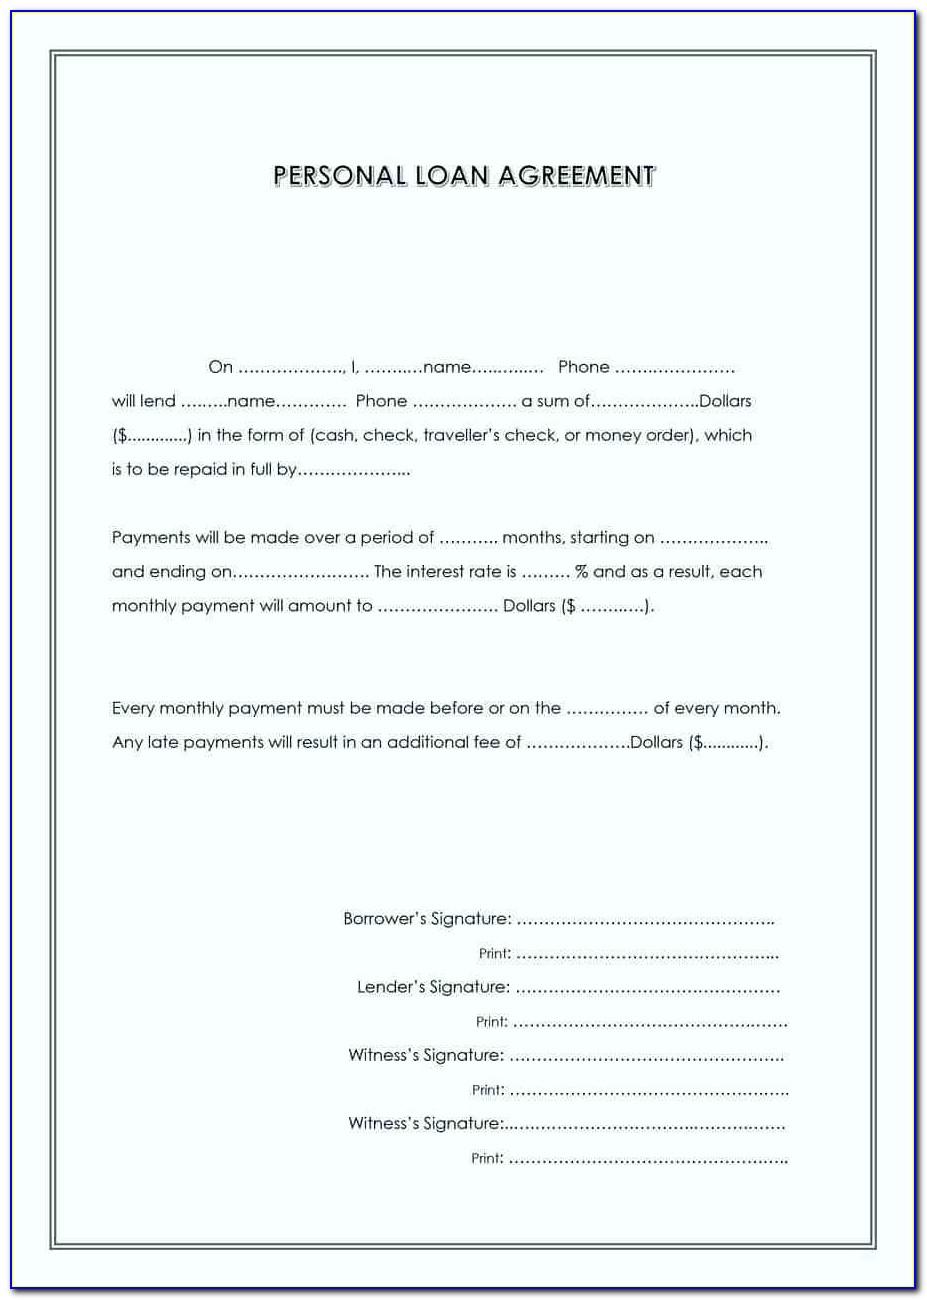 Unsecured Loan Agreement Template Australia